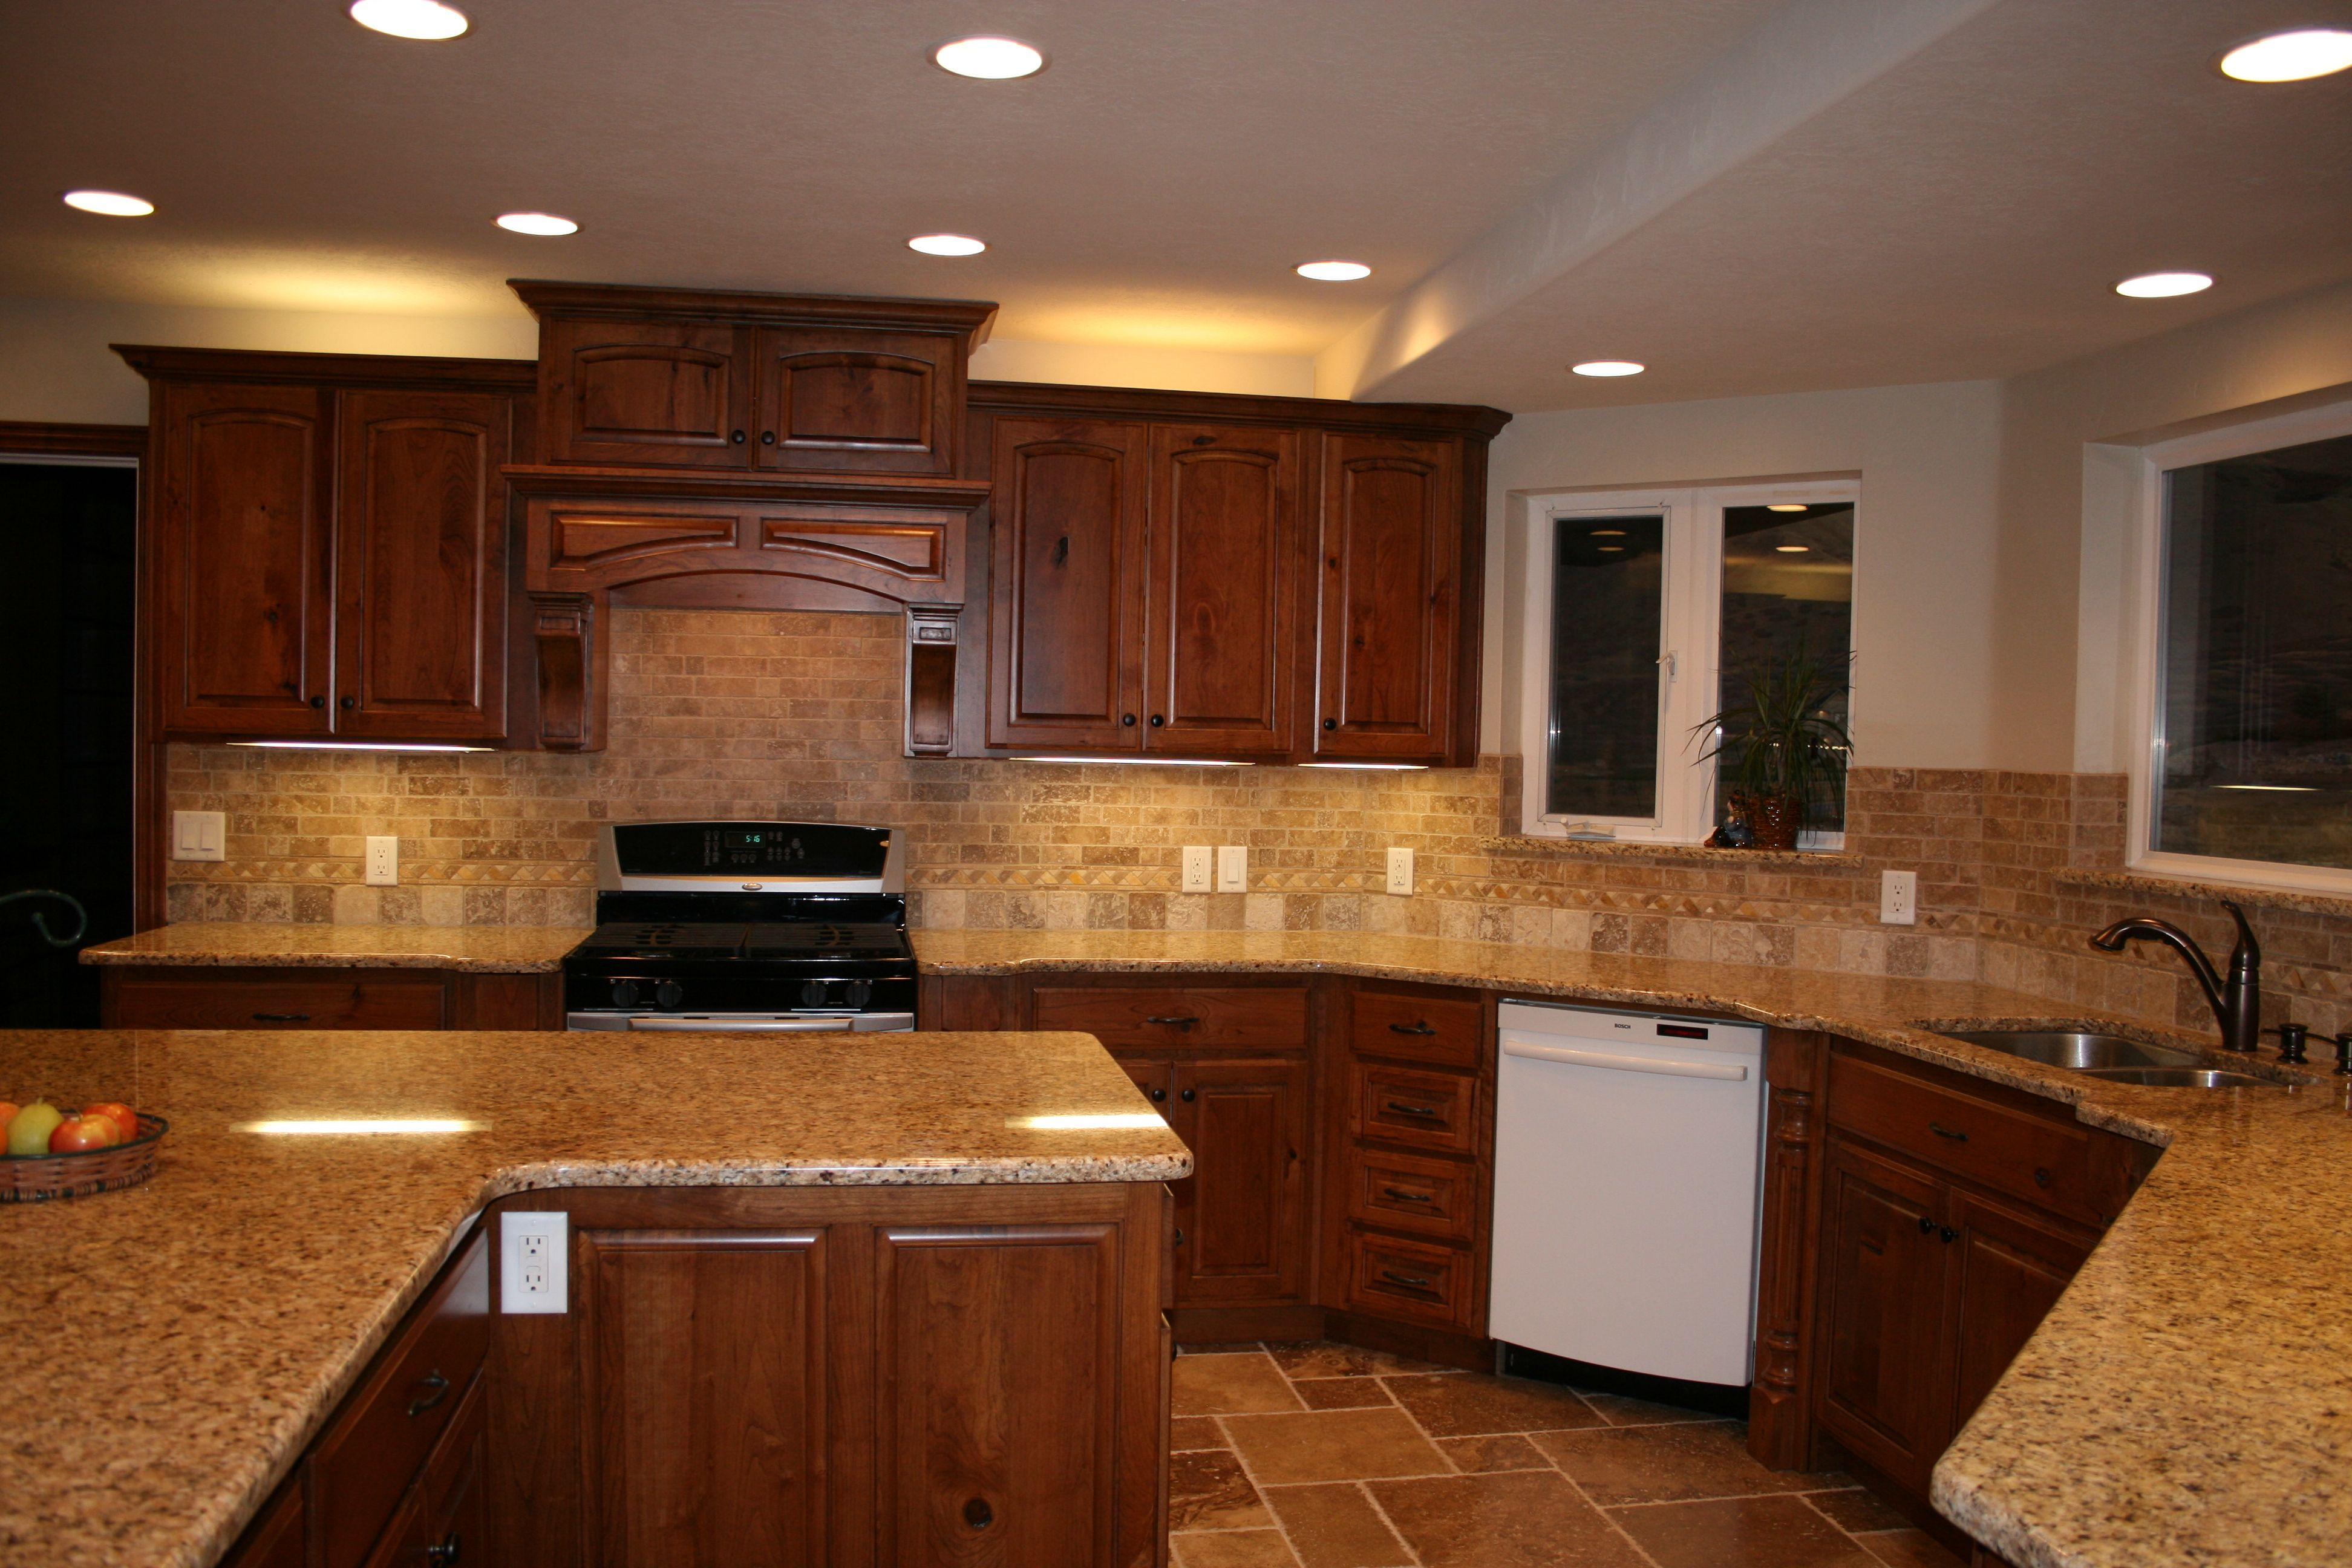 Kitchen Backsplash Ideas With Cherry Cabinets Part - 36: Kitchen Backsplash Ideas With Cherry Cabinets Powder From Kitchen  Backsplash Ideas With Cherry Cabinets